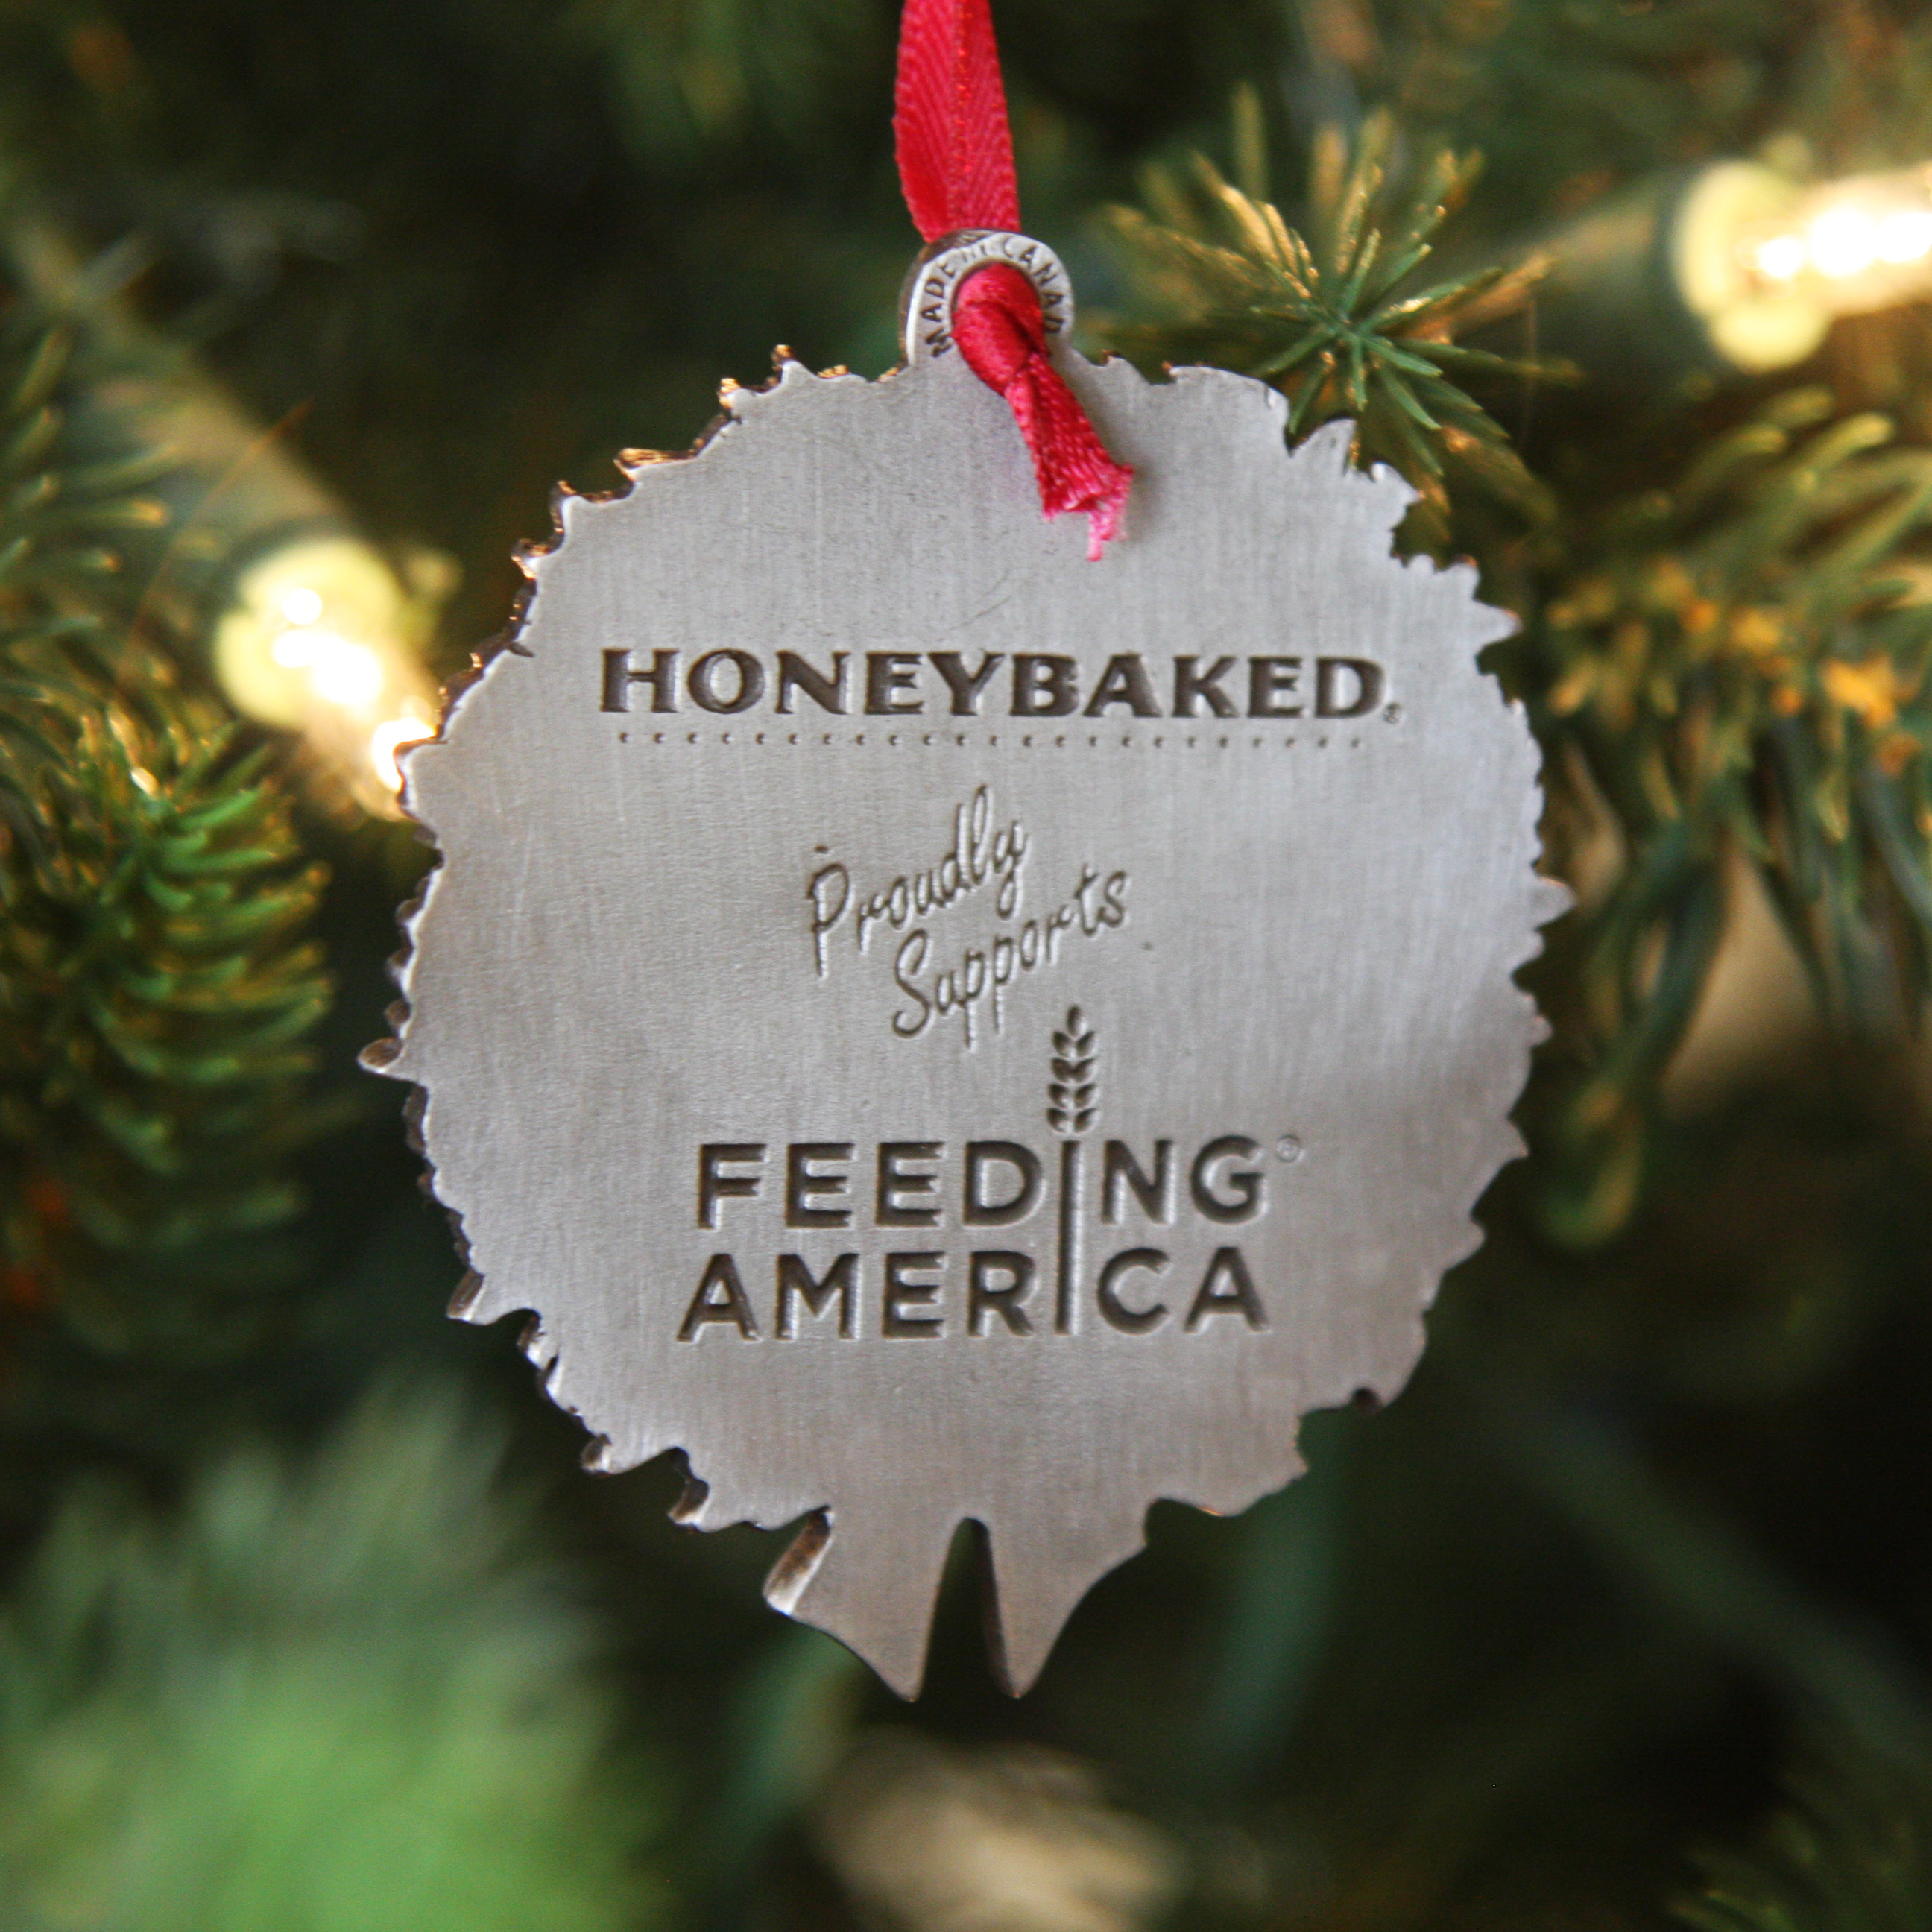 Honeybaked Hame Feeding America Photography Example